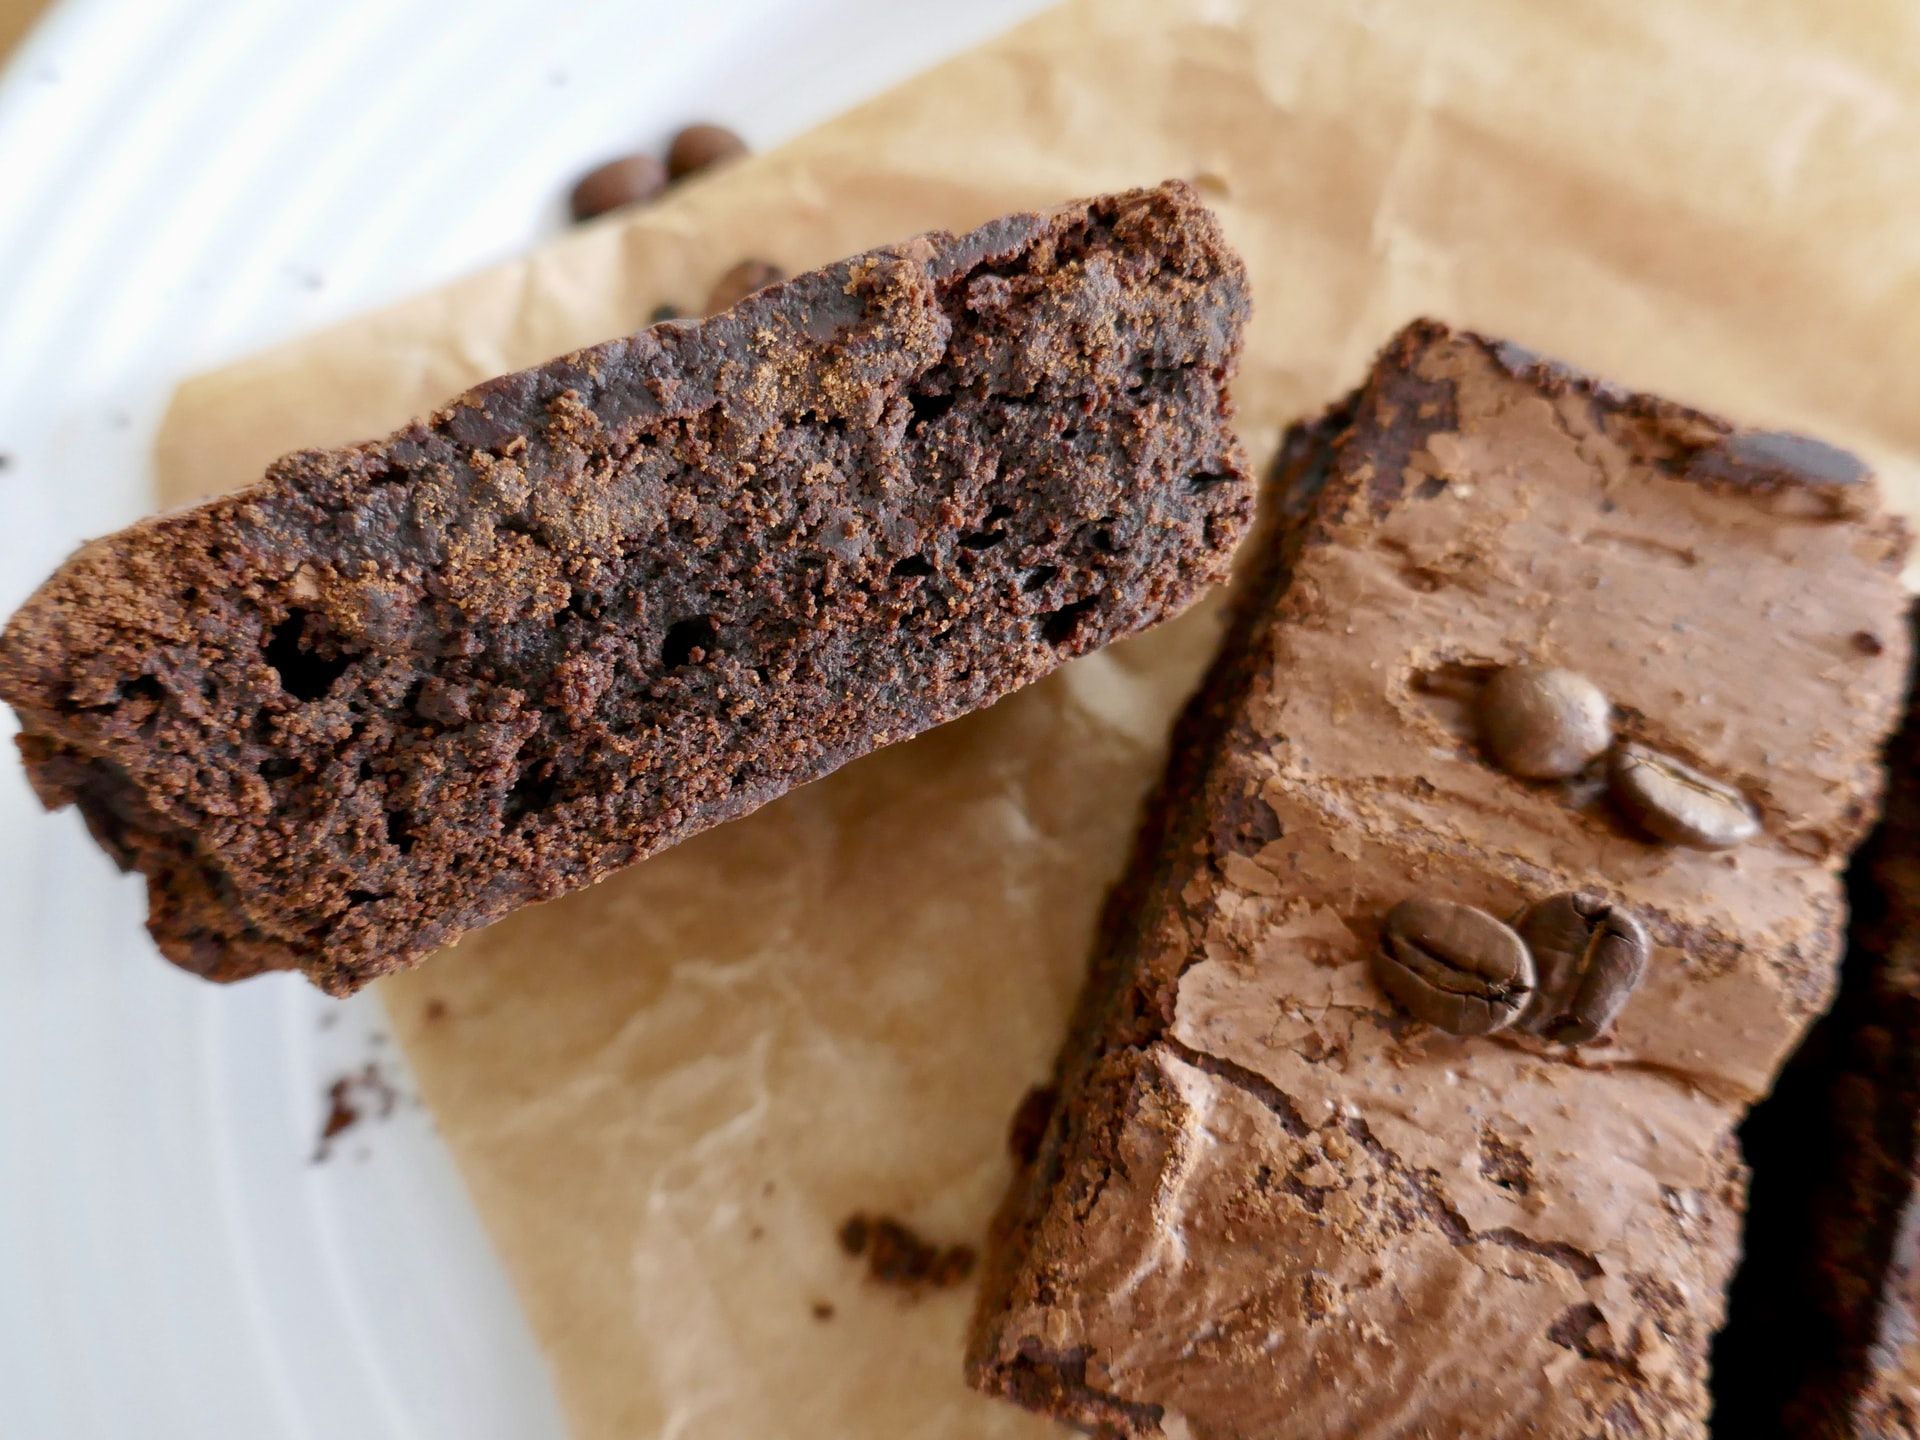 2 slices of chocolate brownie on wooden board